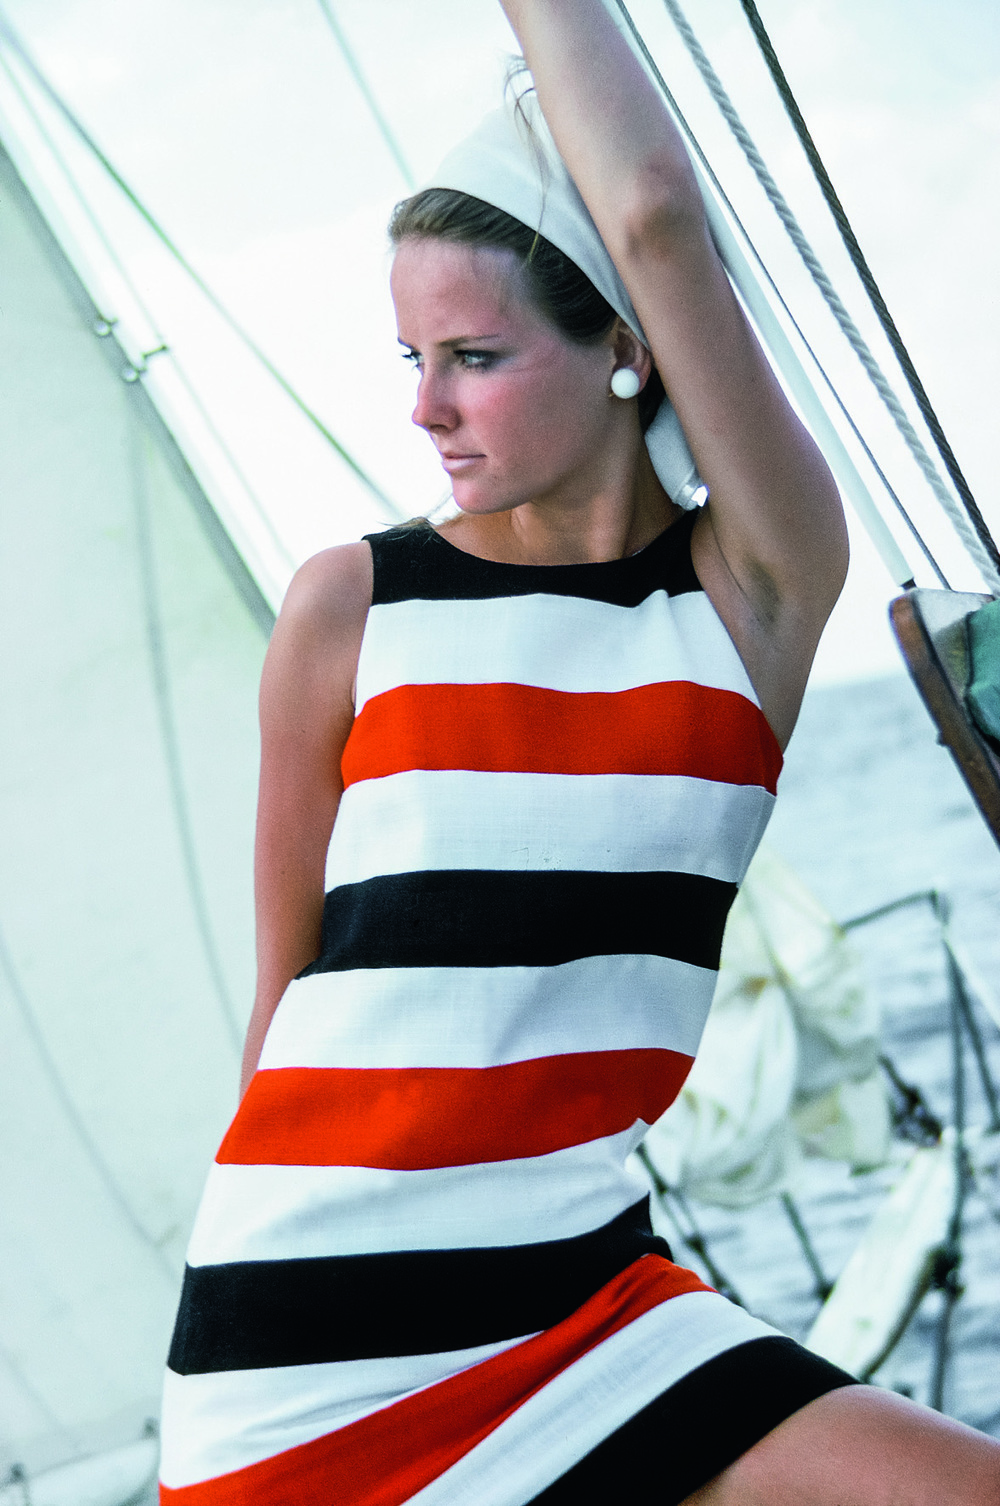 © The Stylish Life - Yachting, published by teNeues, www.teneues.com. Cheryl Tiegs Sailing in Striped Sheath Dress, Photo © Condé Nast Archive/Corbis.